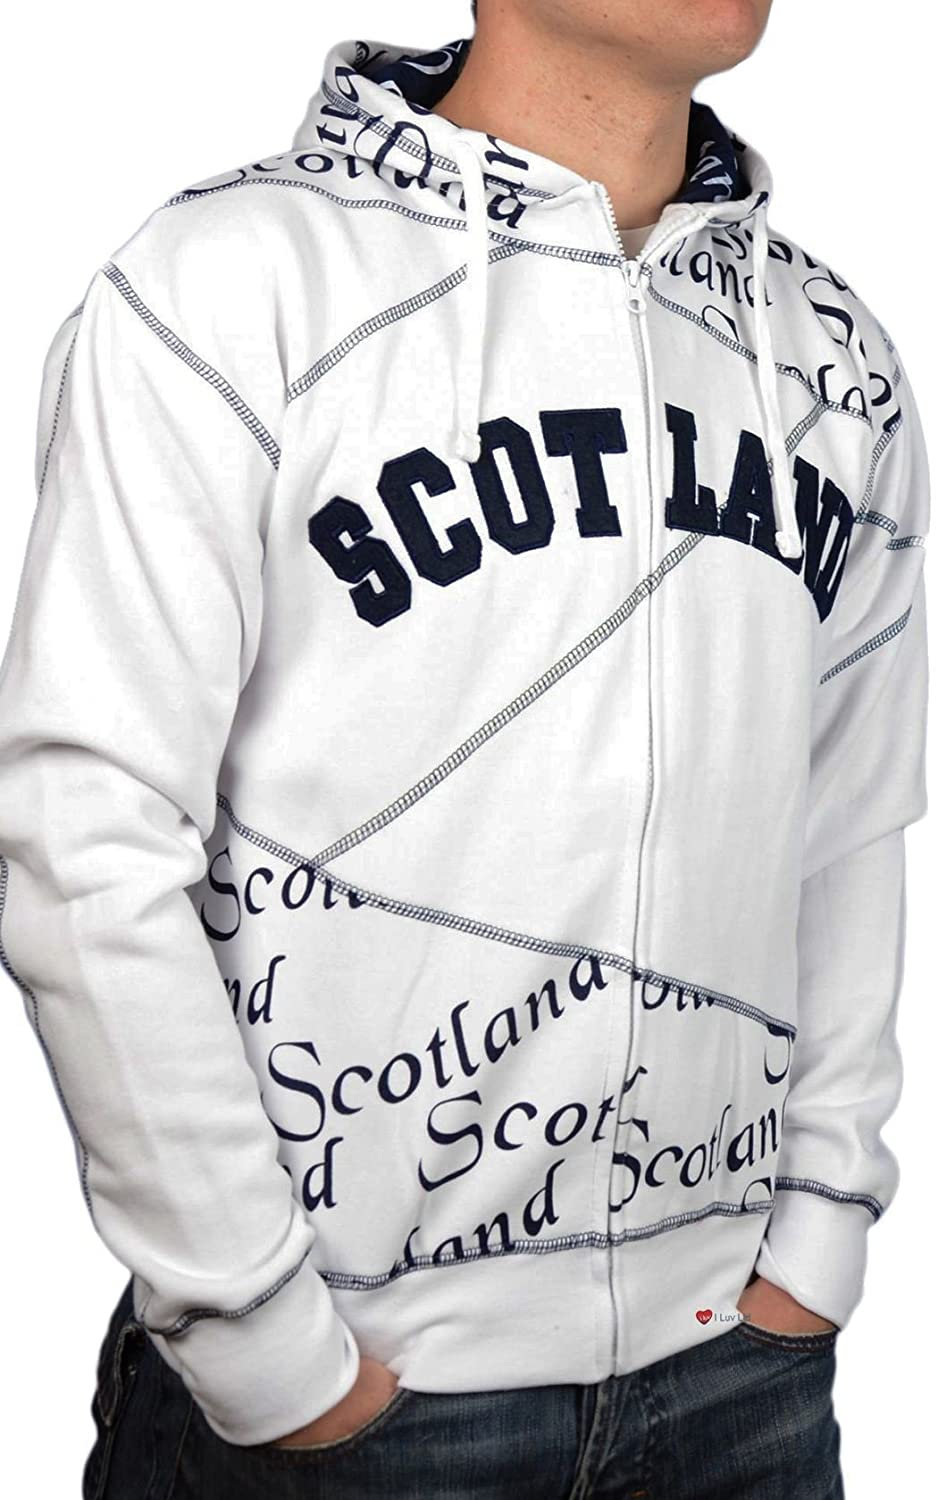 Zip Top Scotland Scroll Navy Lettering Fashion Hoodie Top Weiß X-Large